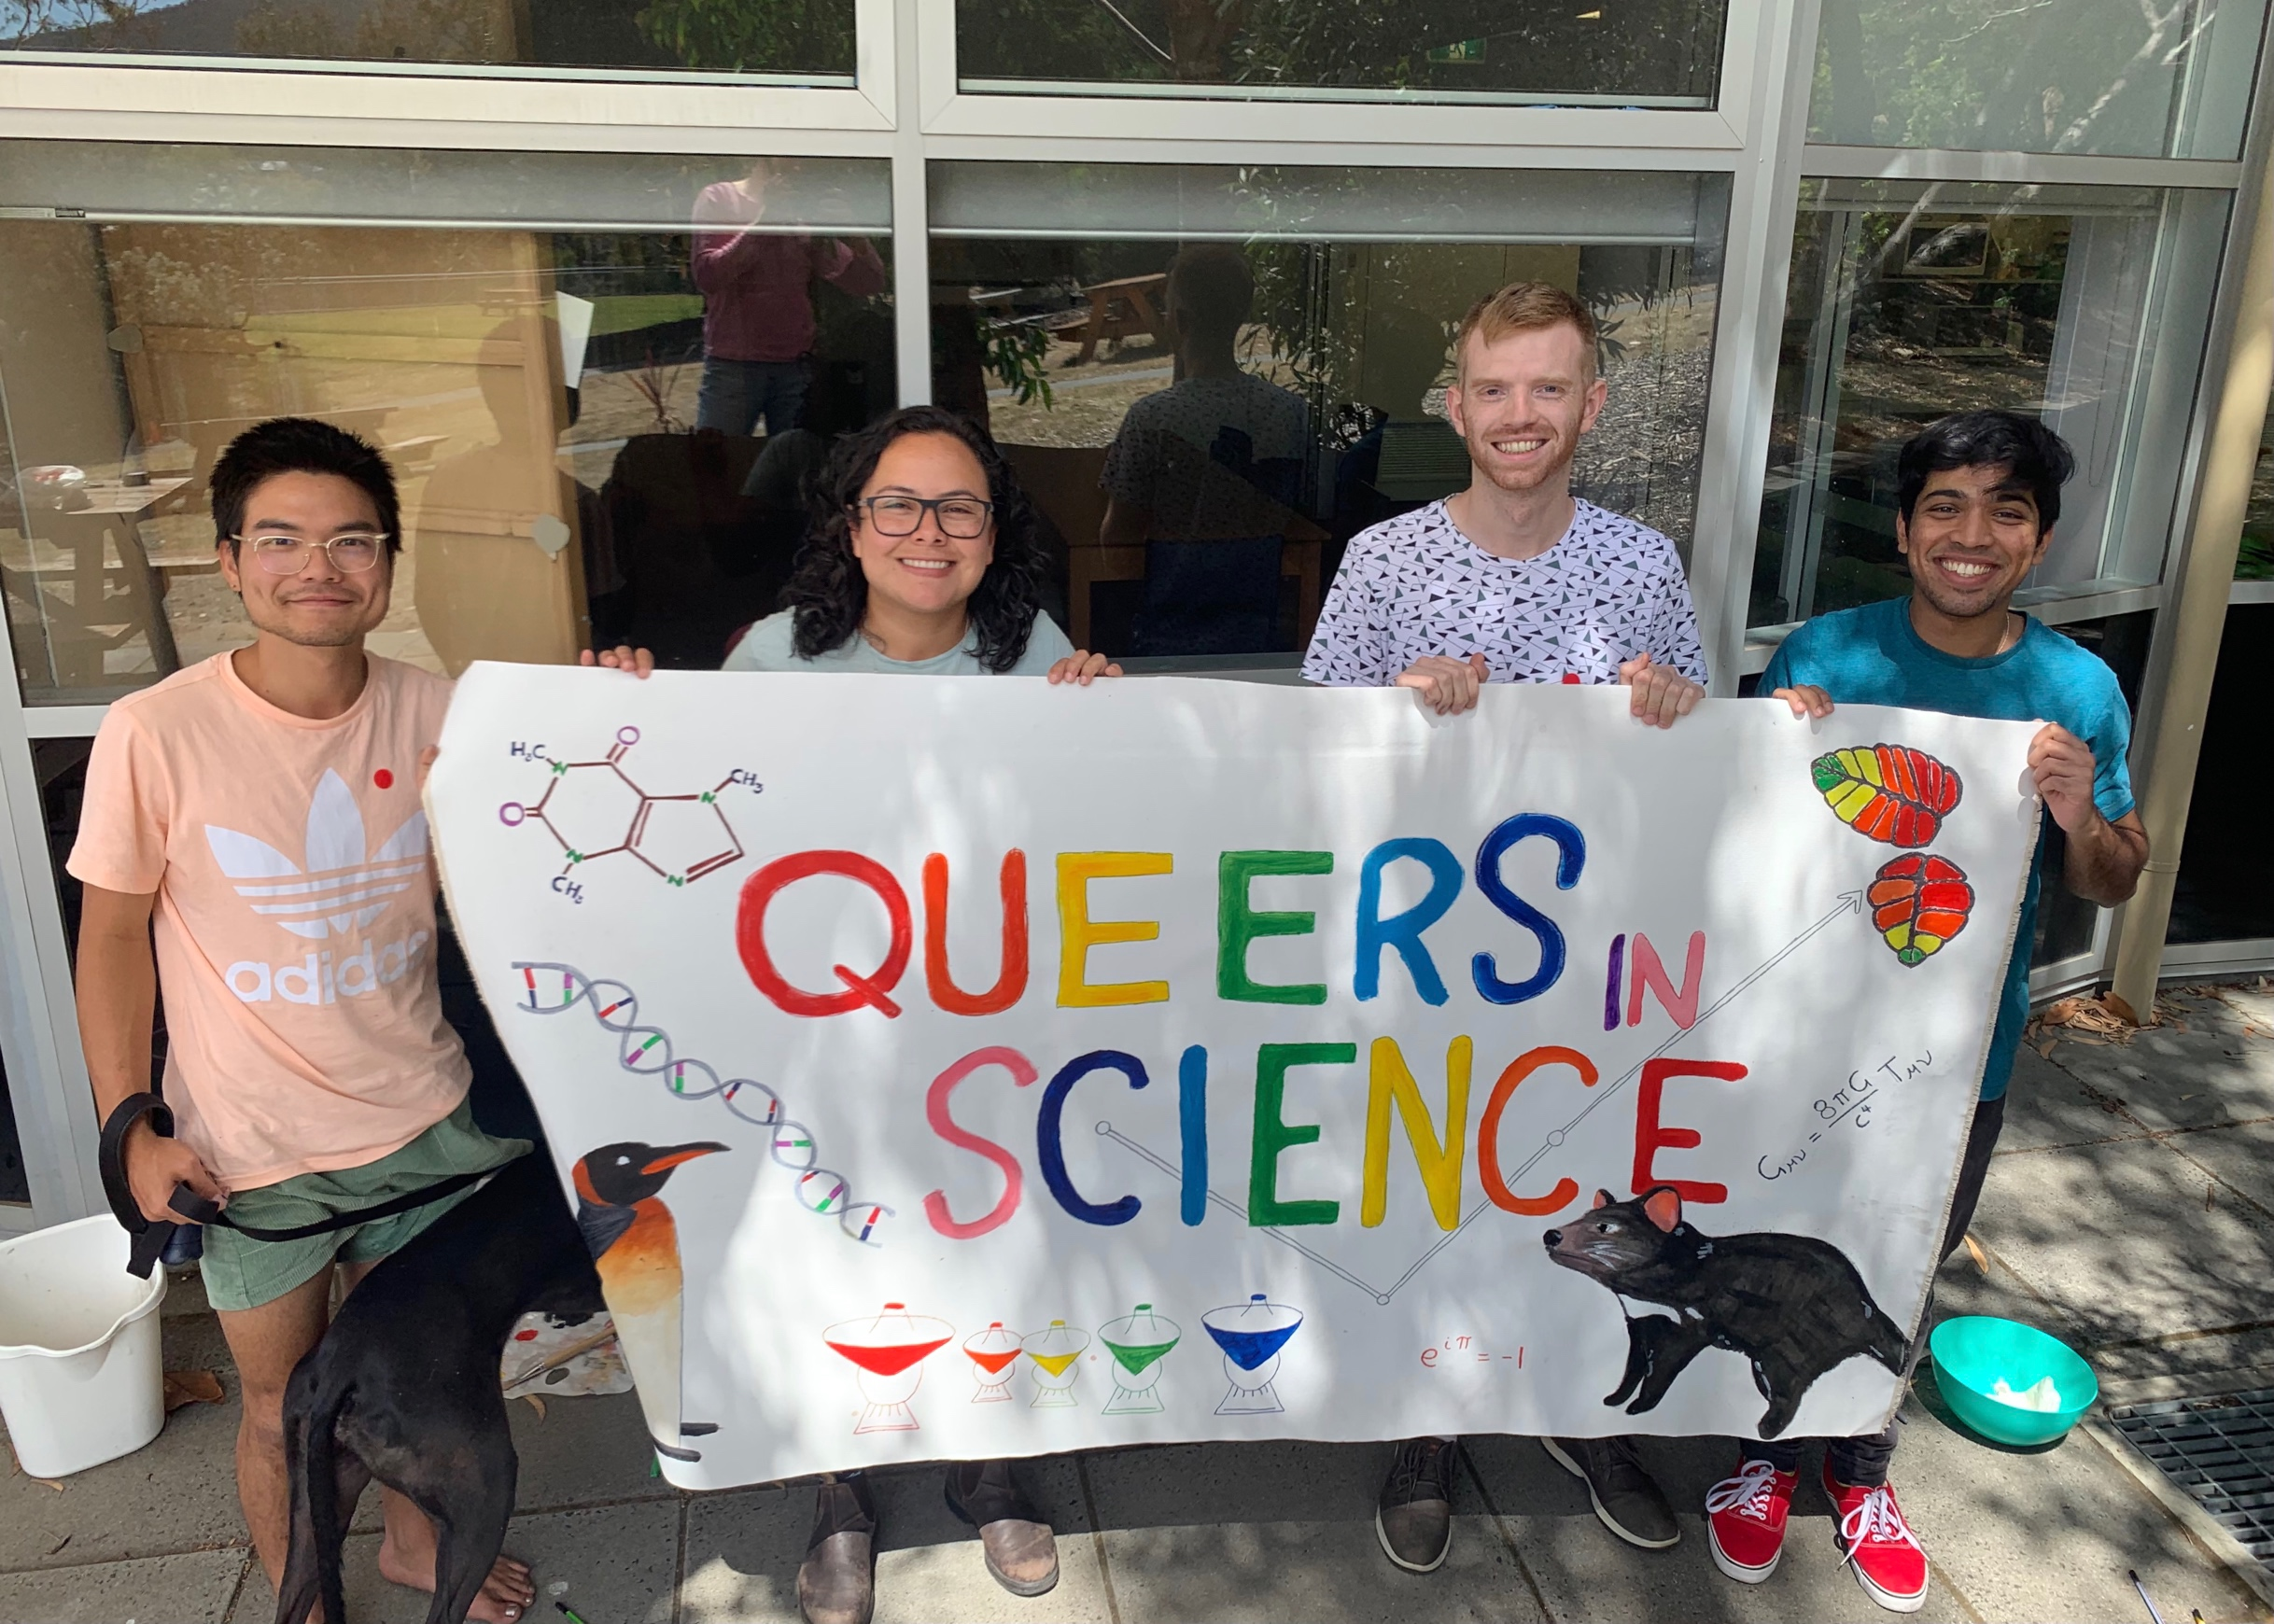 Ink, Petra, Ross and Zach holding to QueersInScience banner.